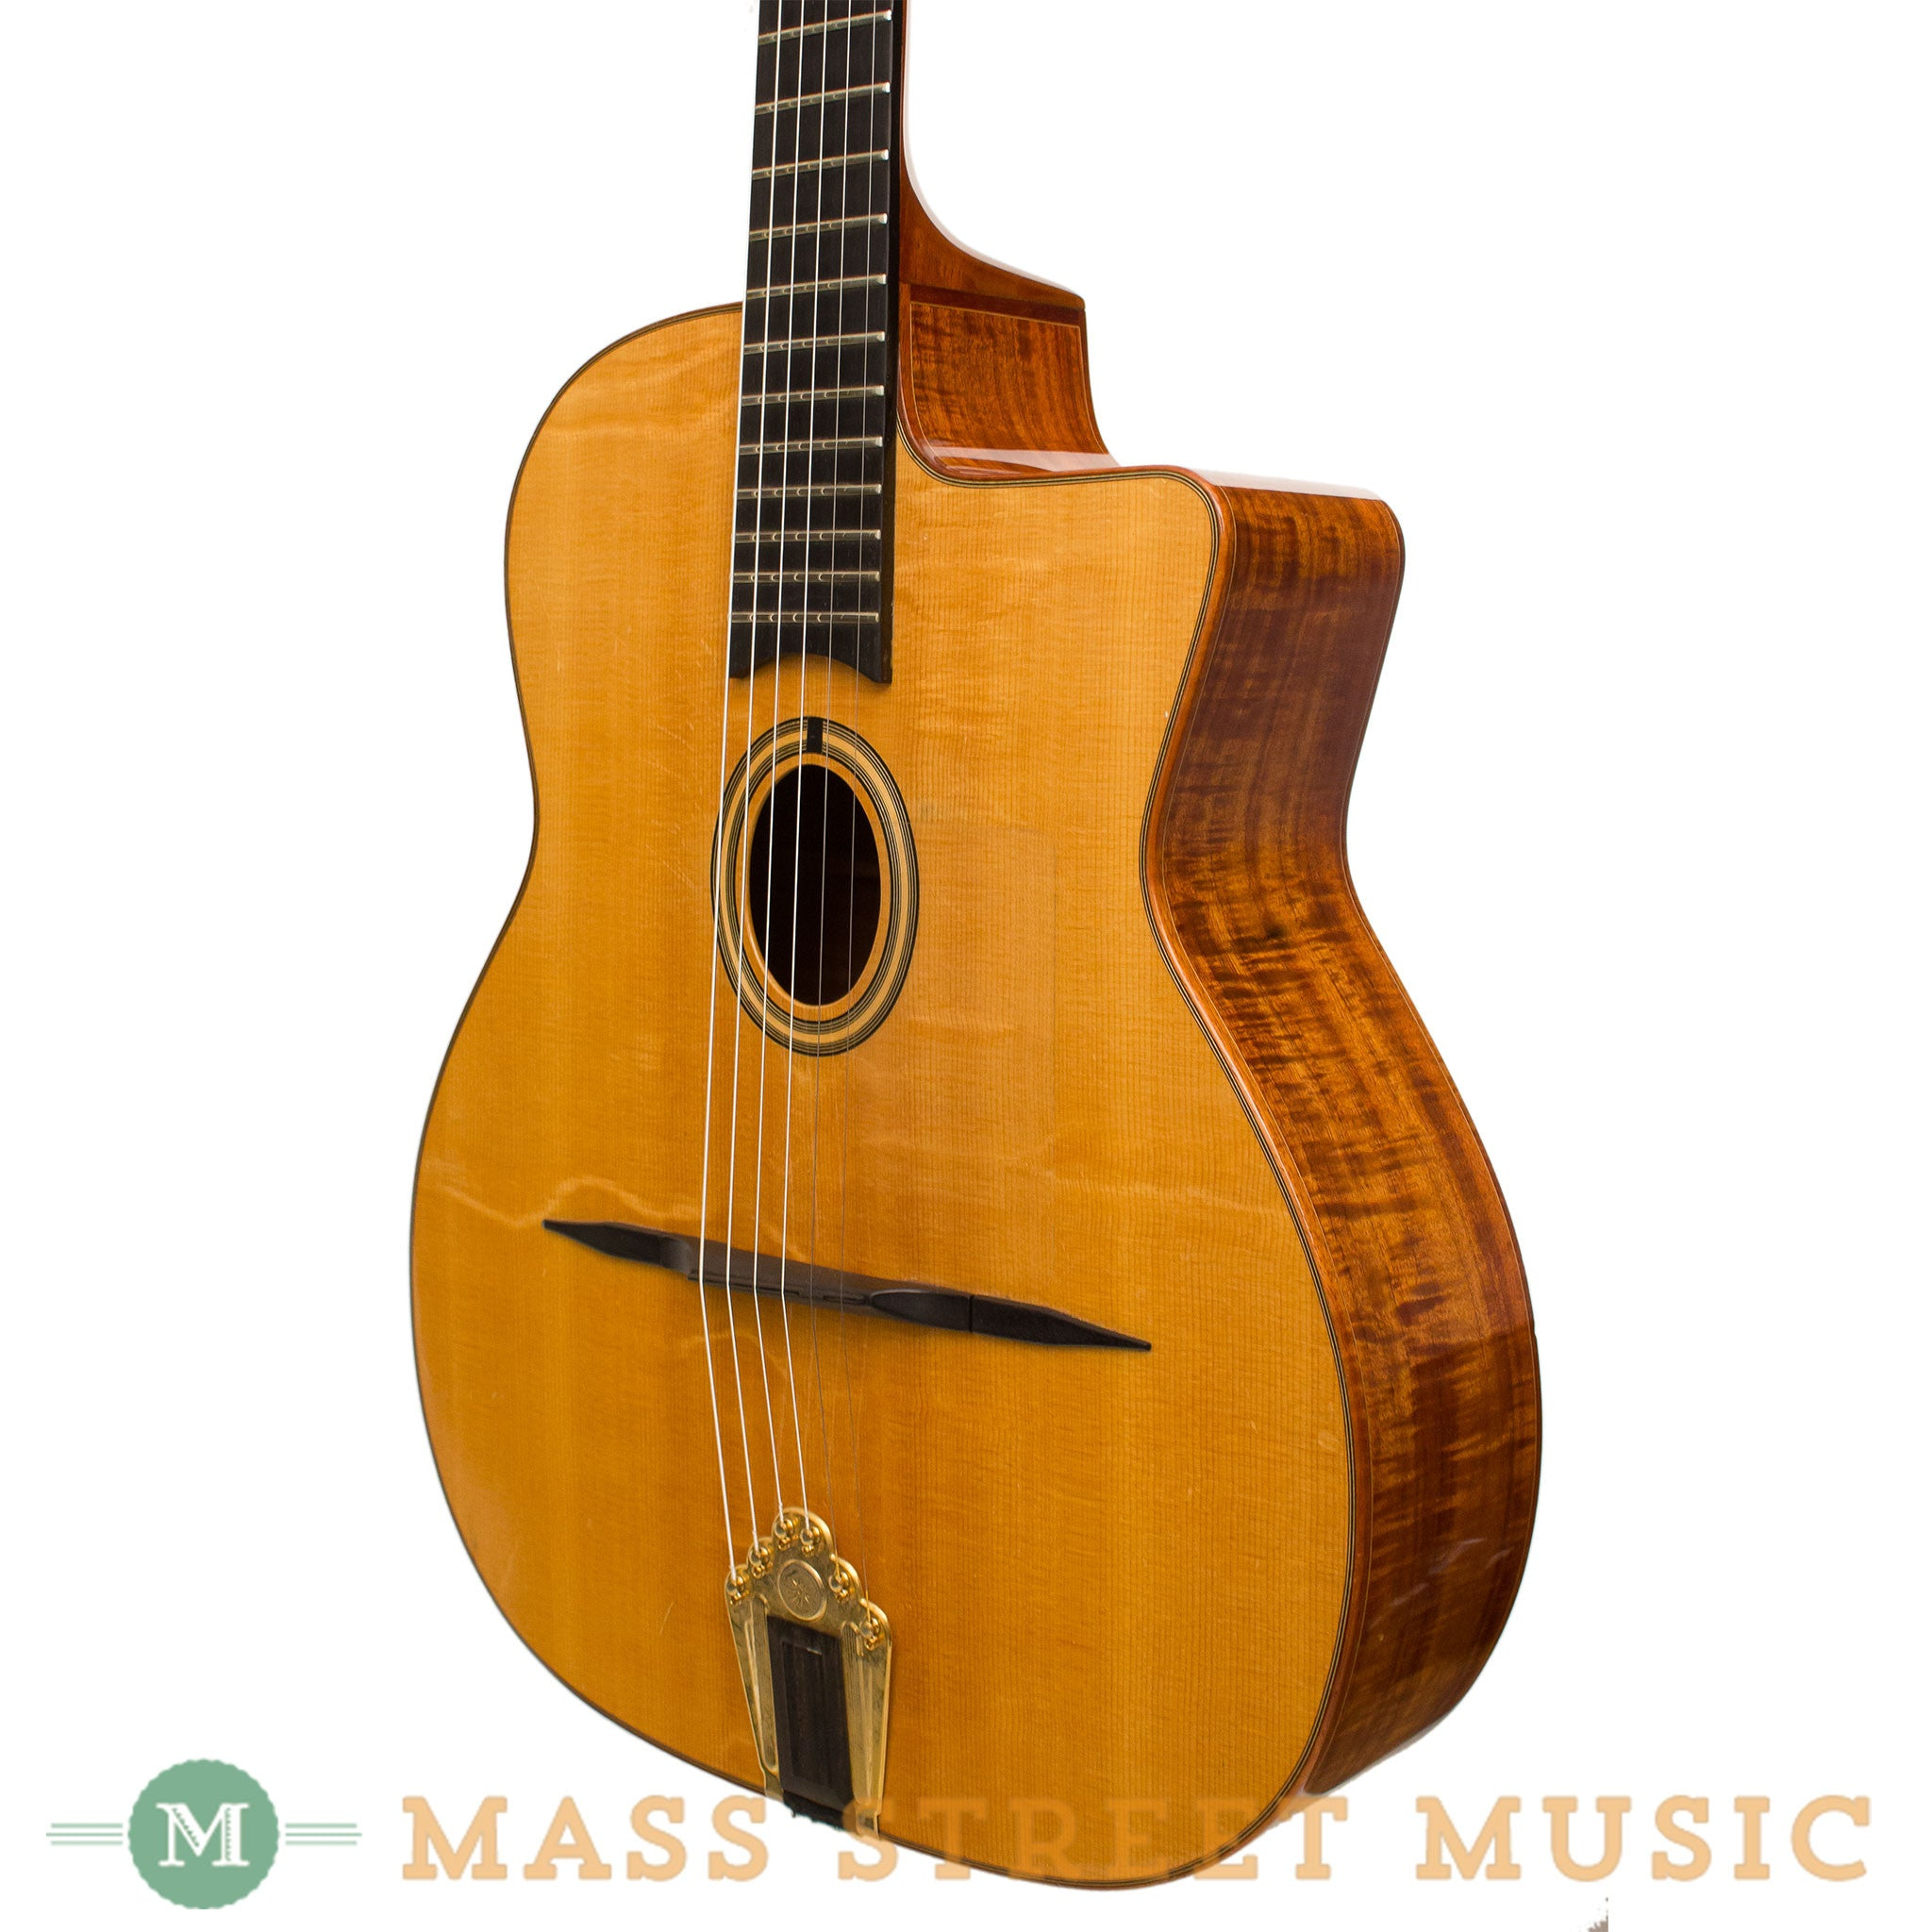 shelley park guitars 1998 gypsy jazz guitar with koa back sides mass street music store. Black Bedroom Furniture Sets. Home Design Ideas